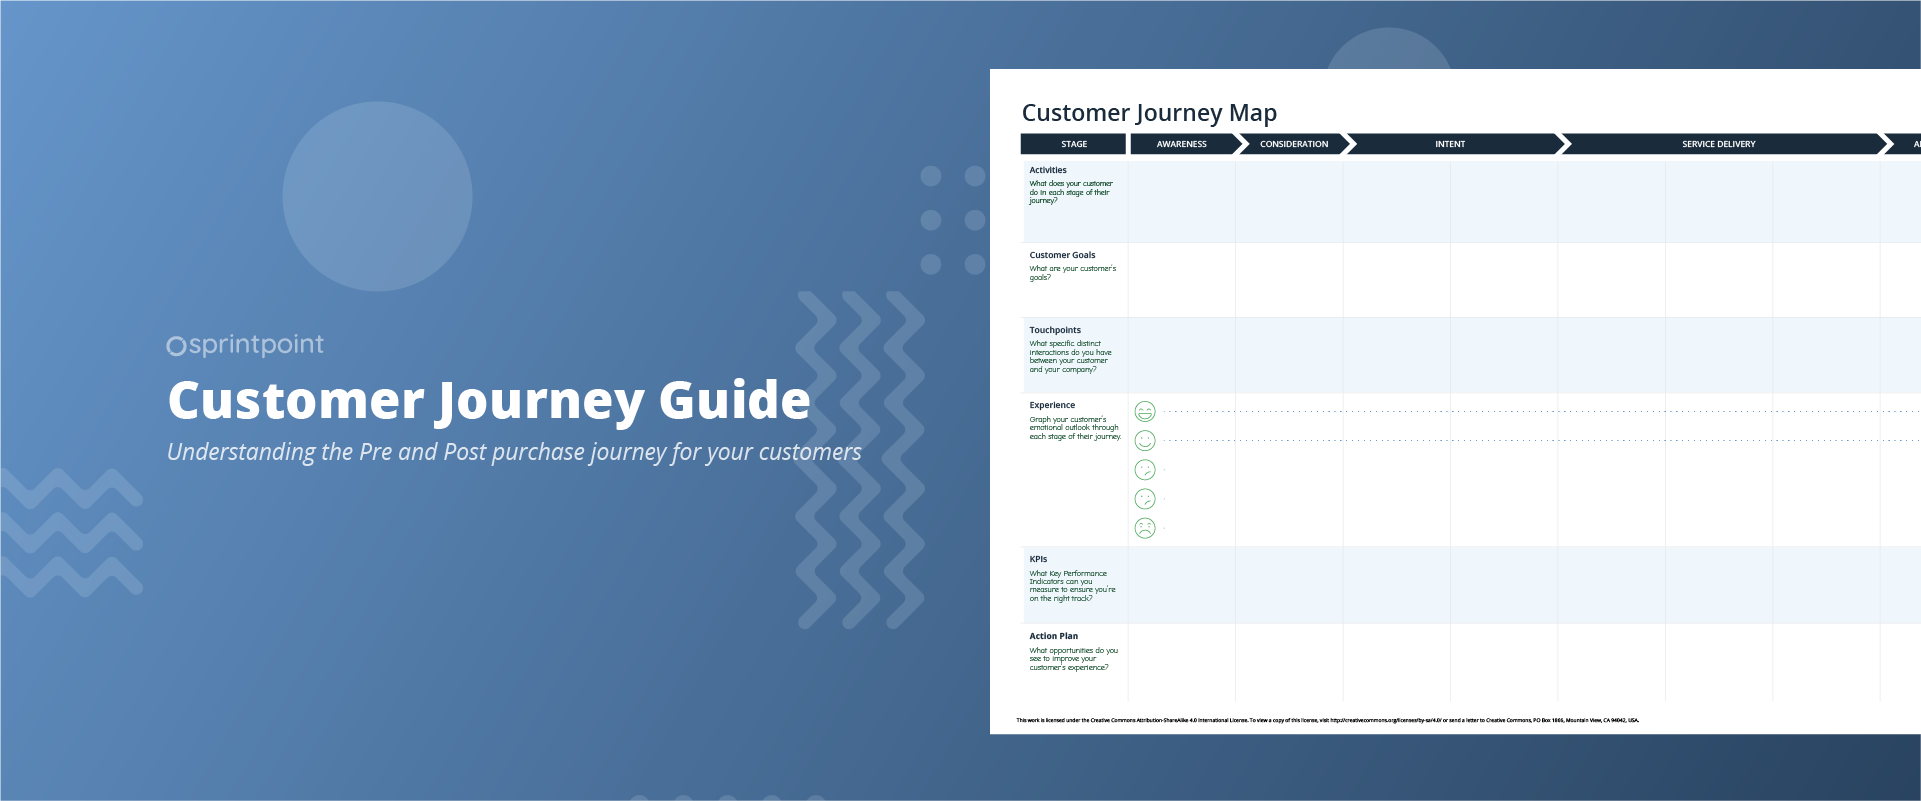 customer journey map guide